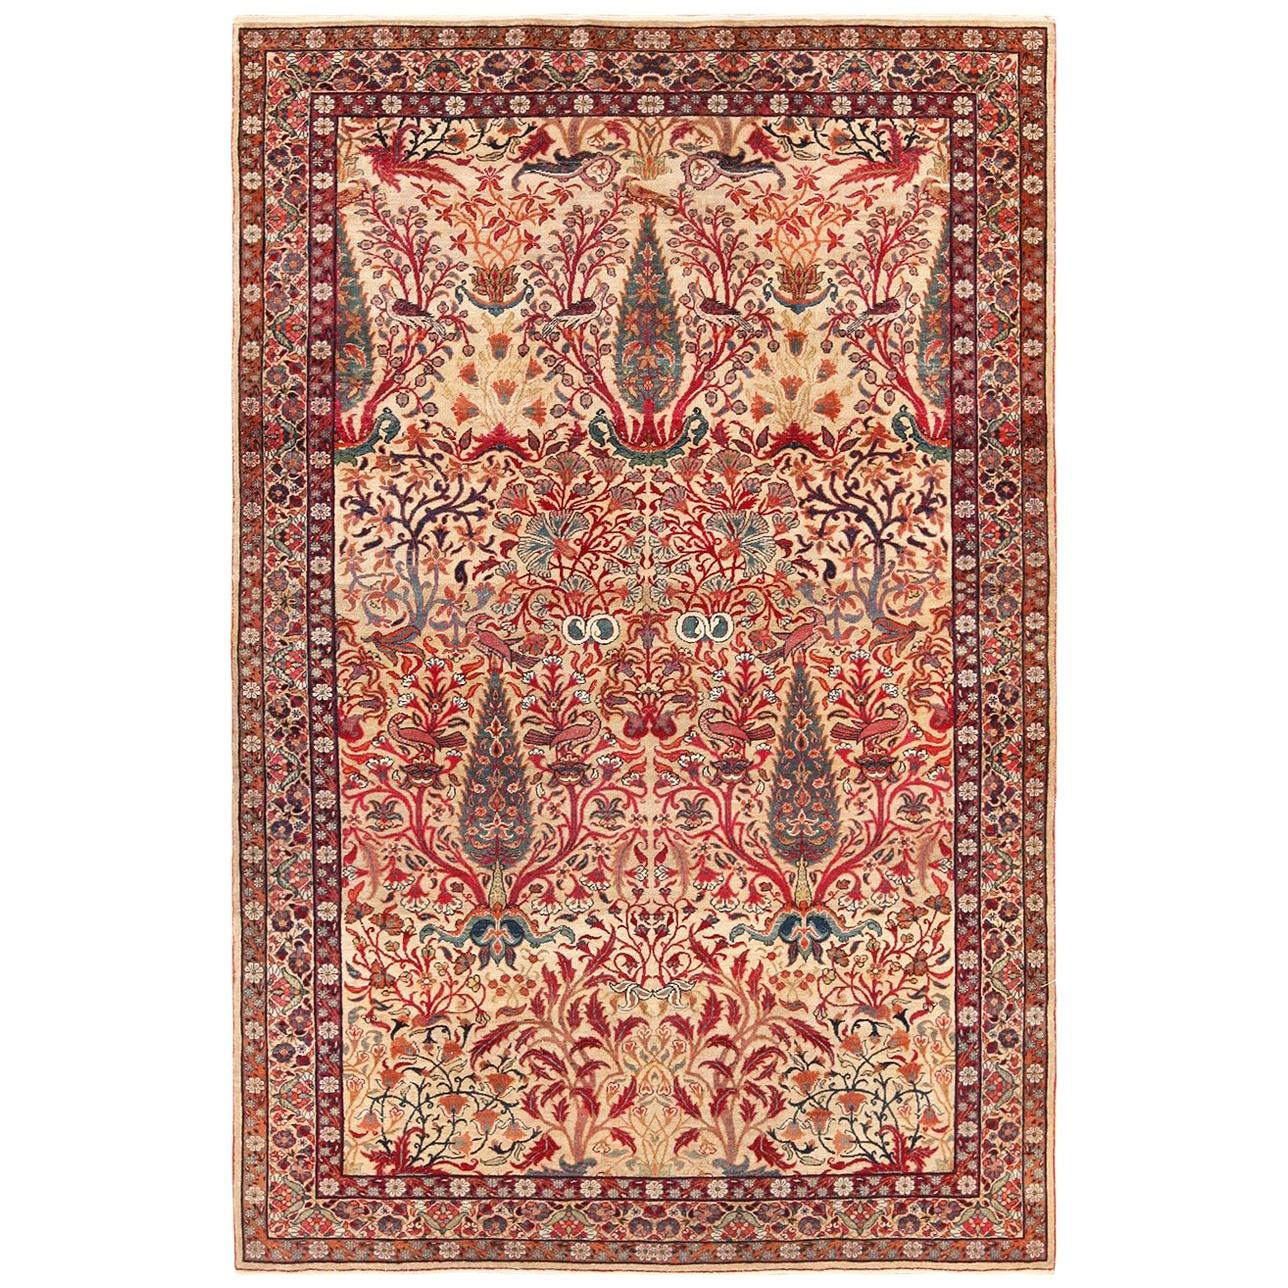 Fine Antique Persian Kerman Rug Size 4 Ft 1 In X 6 Ft 3 In 1 24 M X 1 9 M For Sale At 1stdibs